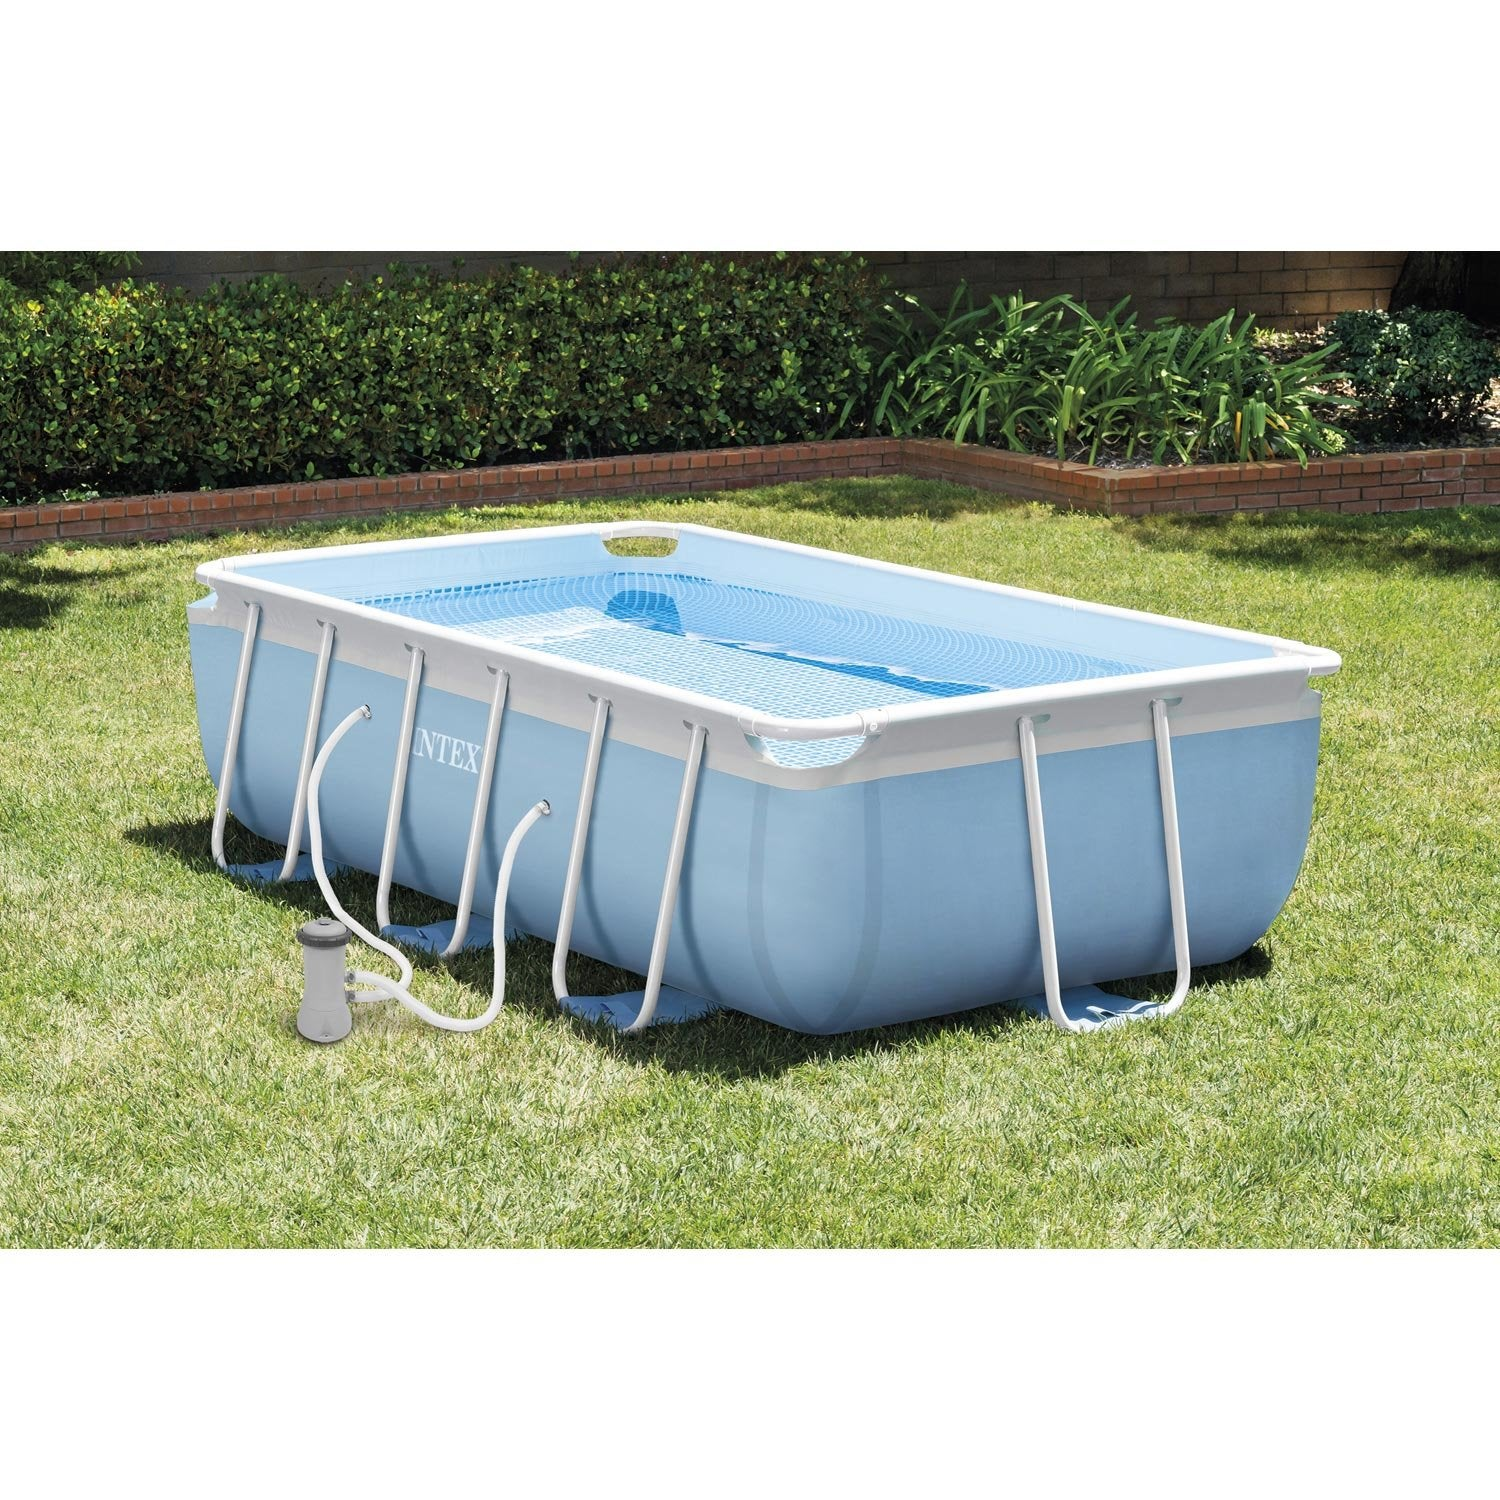 Piscine hors sol autoportante tubulaire intex l 3 4 x l 2 for Piscine hors sol blooma